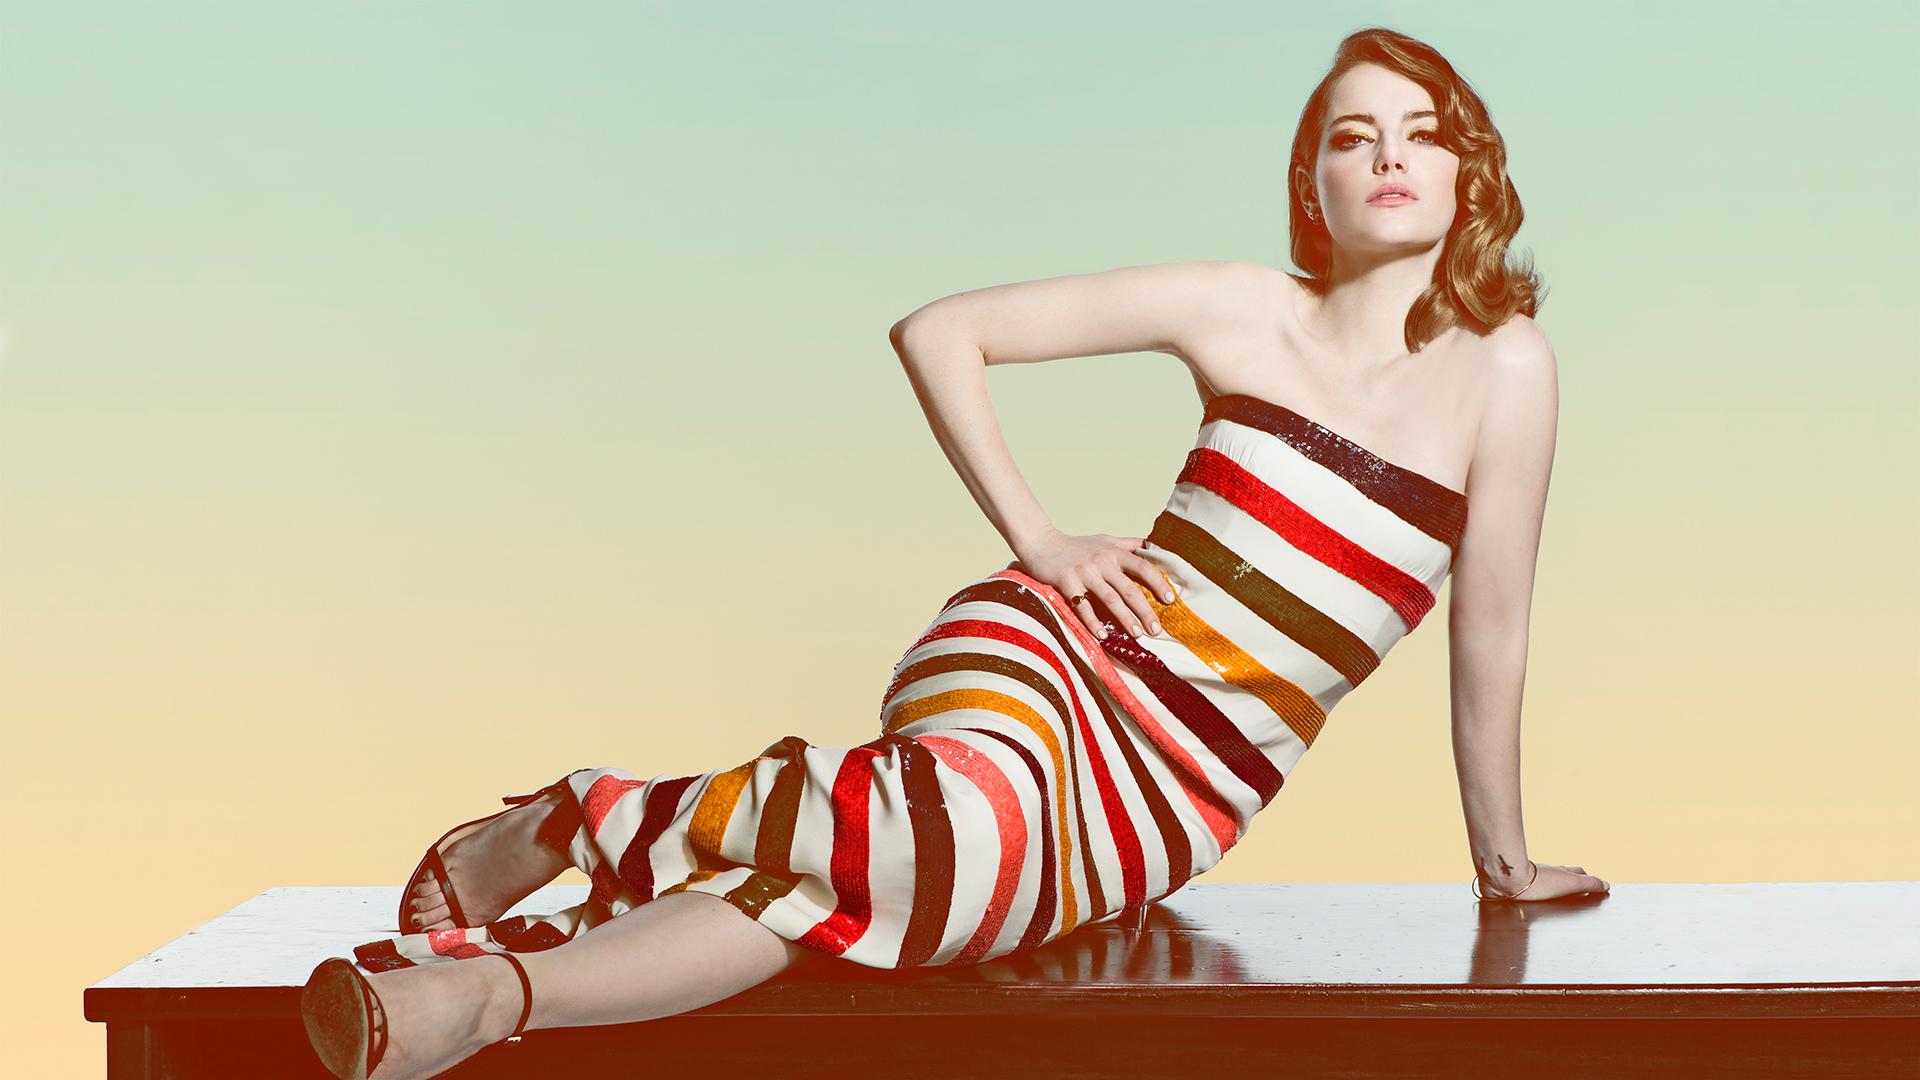 37 Hottest Emma Stone Bikini Pictures Will Make You Fall In Love